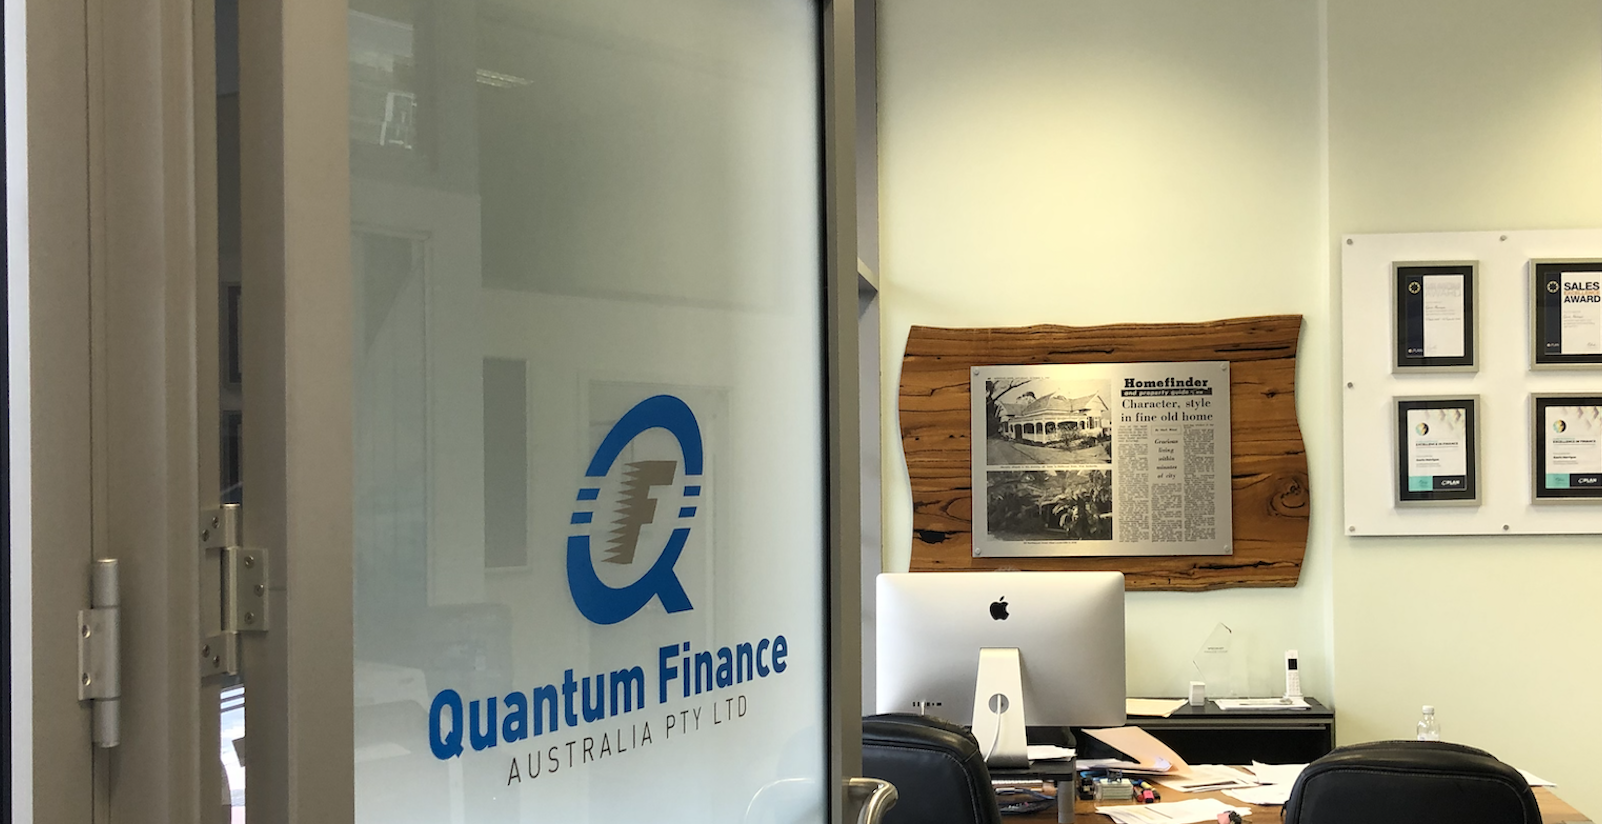 The entry to the Quantum Finance Australia office in Perth Western Australia.